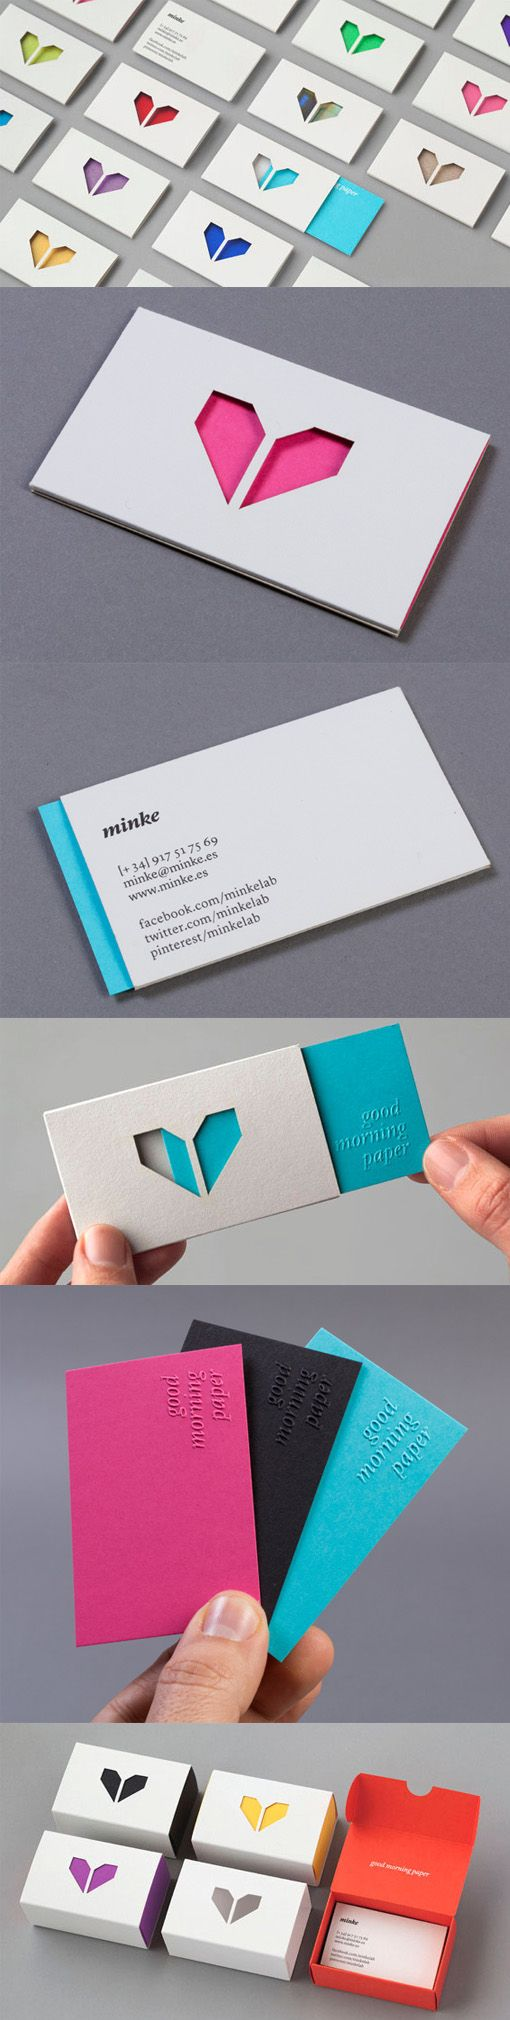 Clever Layered Interactive Die Cut Business Cards For A Print And Design Studio